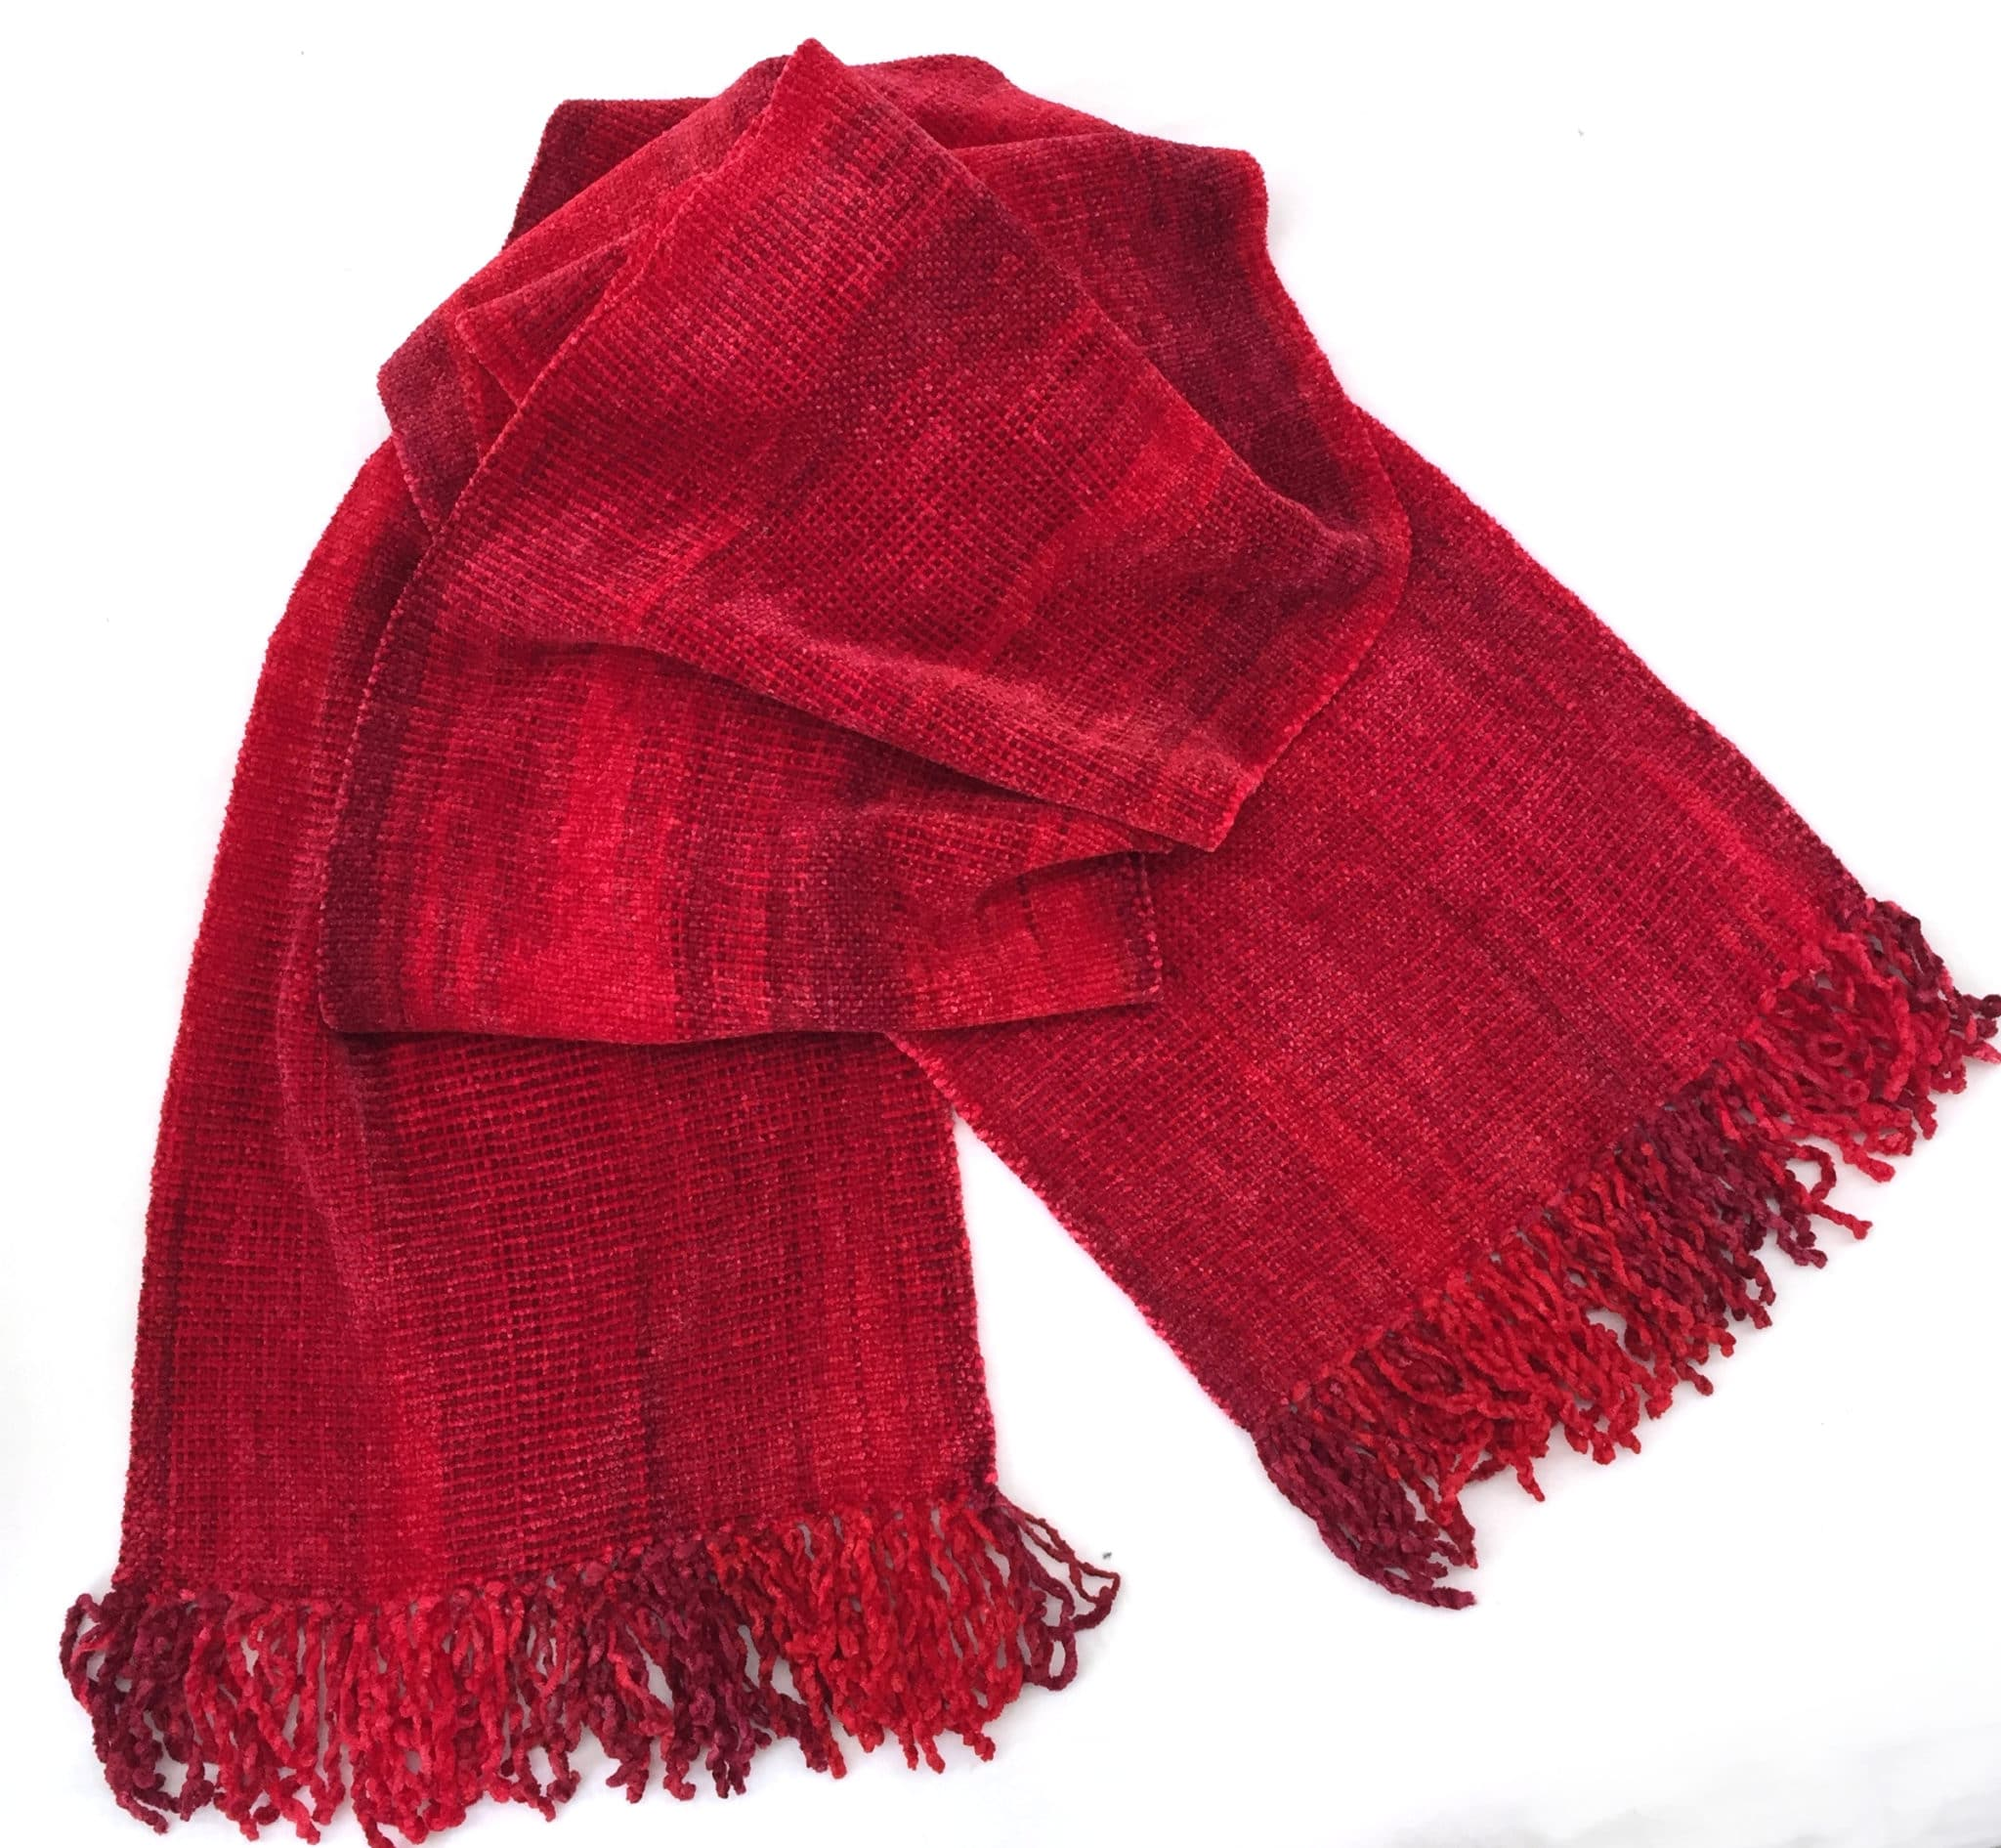 Reds (Bright!) - Bamboo Chenille Handwoven Scarf 8 x 68